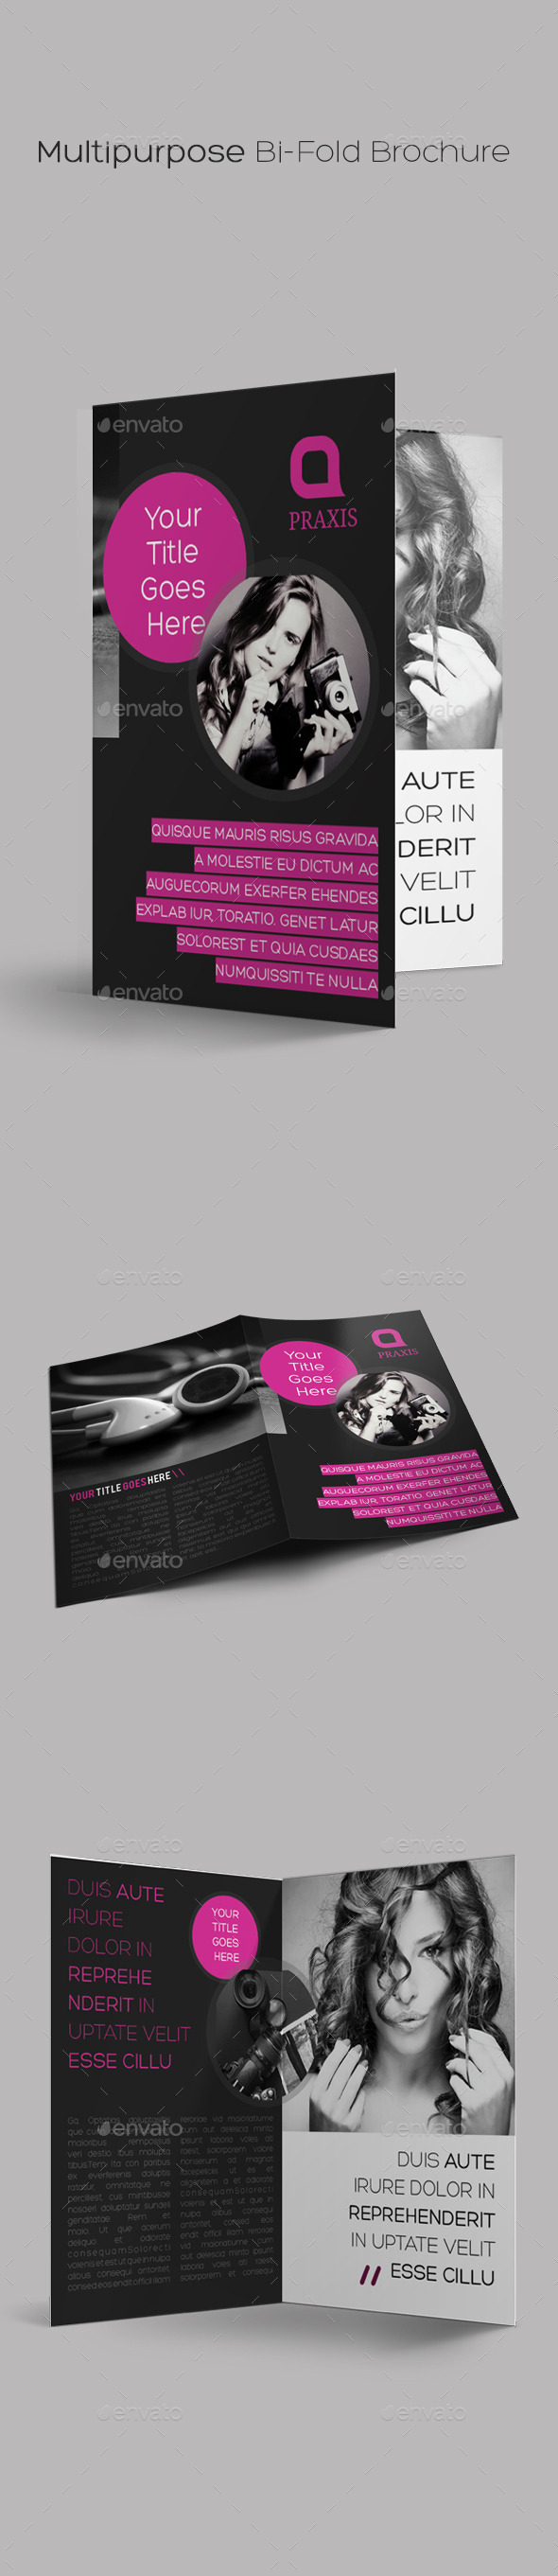 GraphicRiver Multipurpose Bi-Fold Brochure 9694657